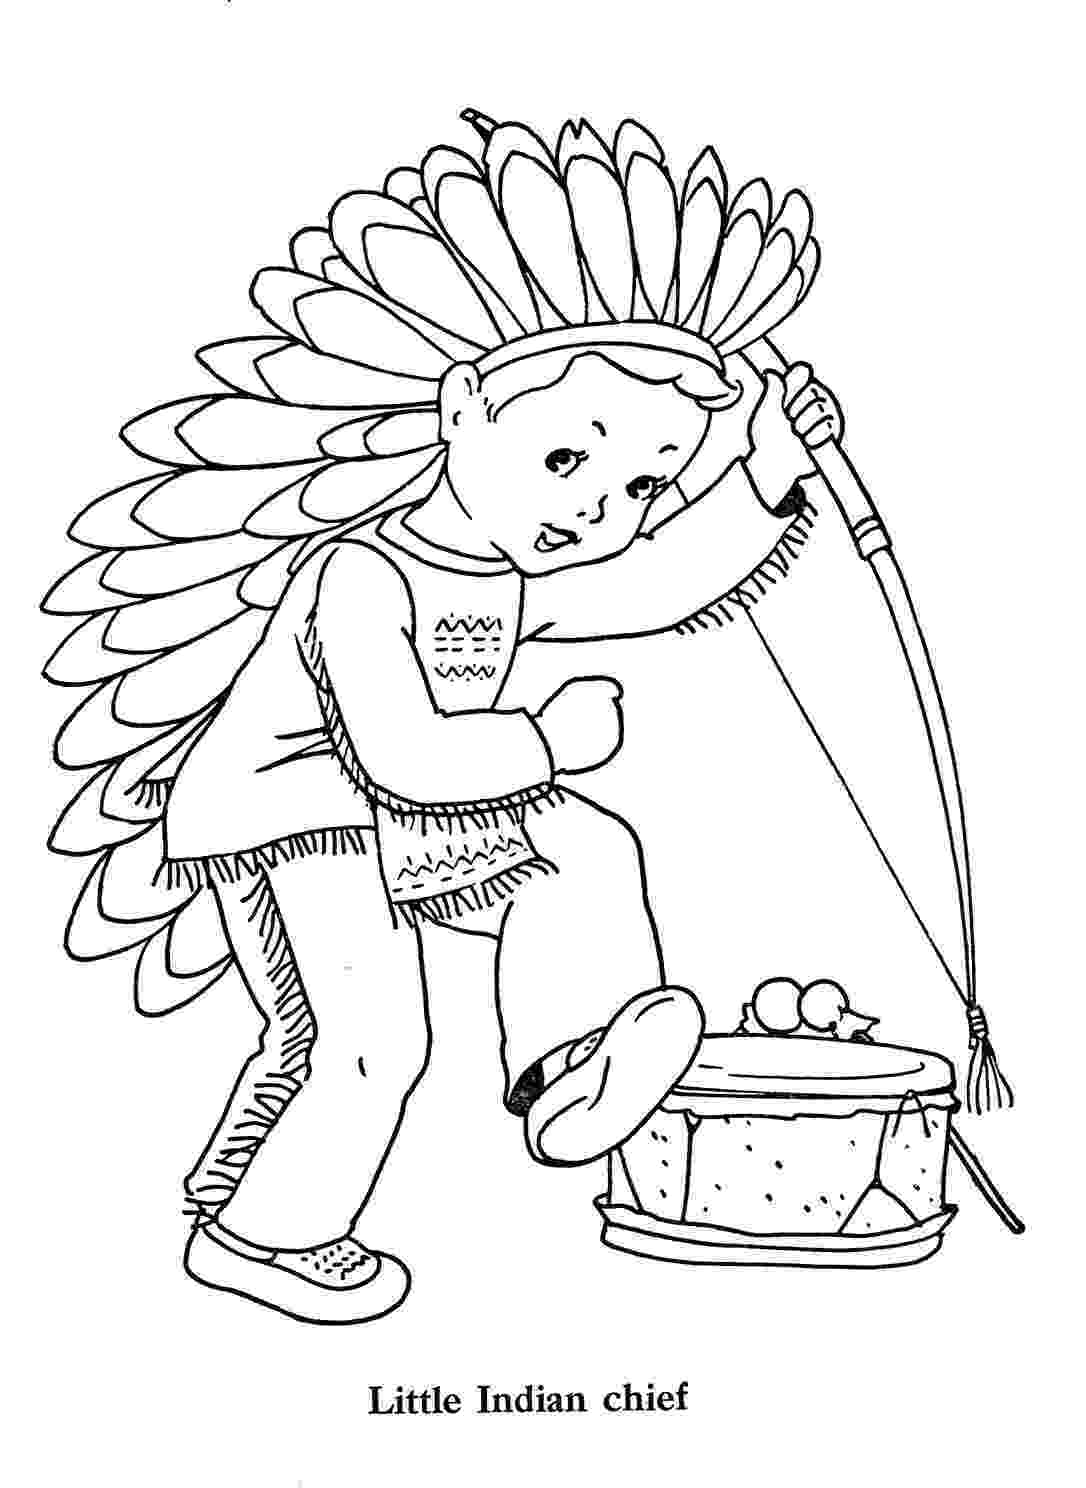 indians coloring pages apache indians coloring page craft and poster indian coloring pages indians